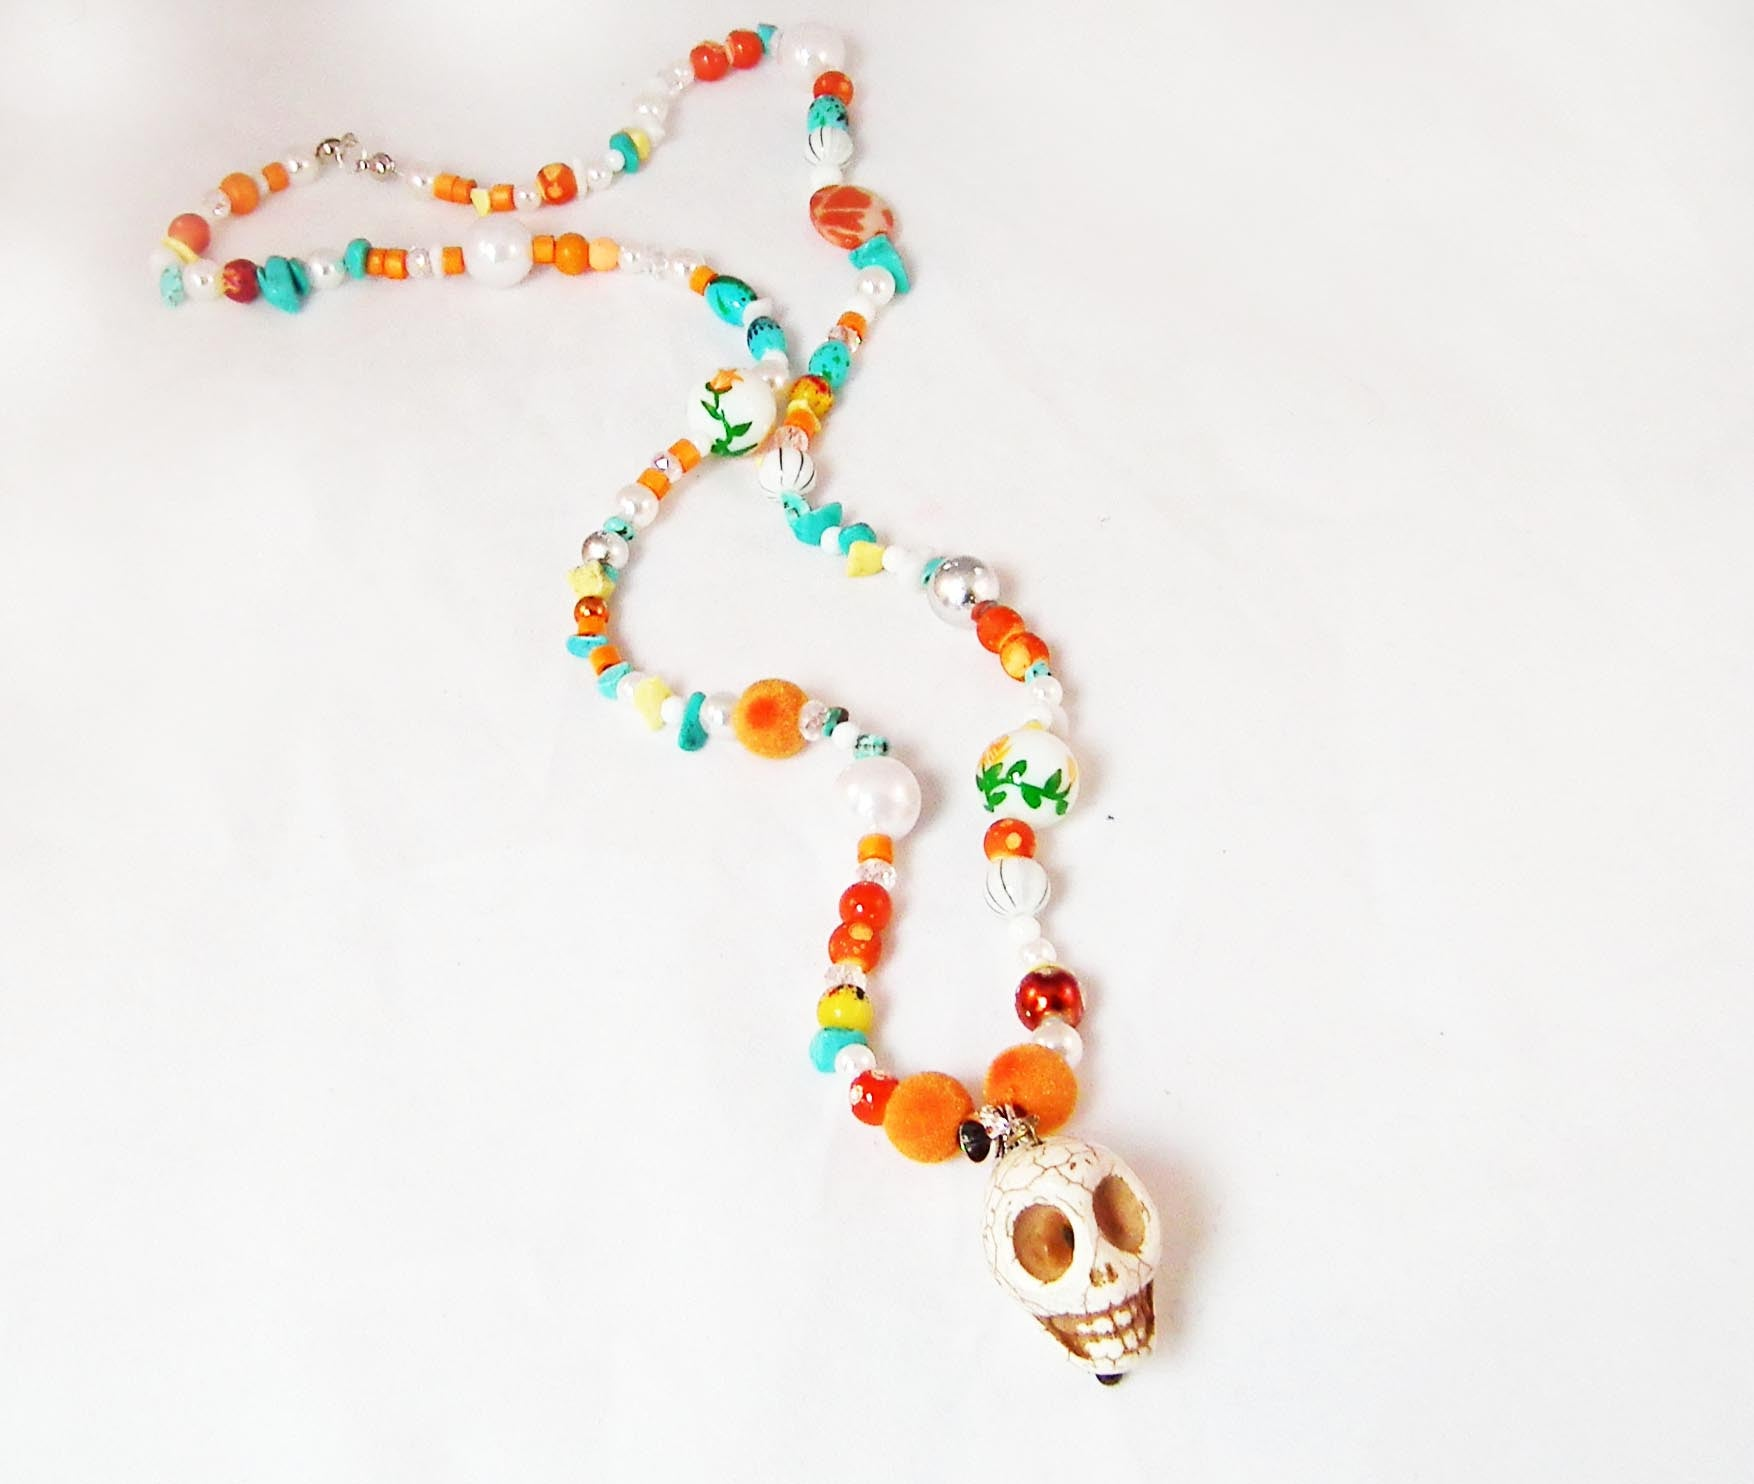 Sautoir Unique Tête de Mort Howlite Skull Handmade Exclusive Necklace - No Mercy Making